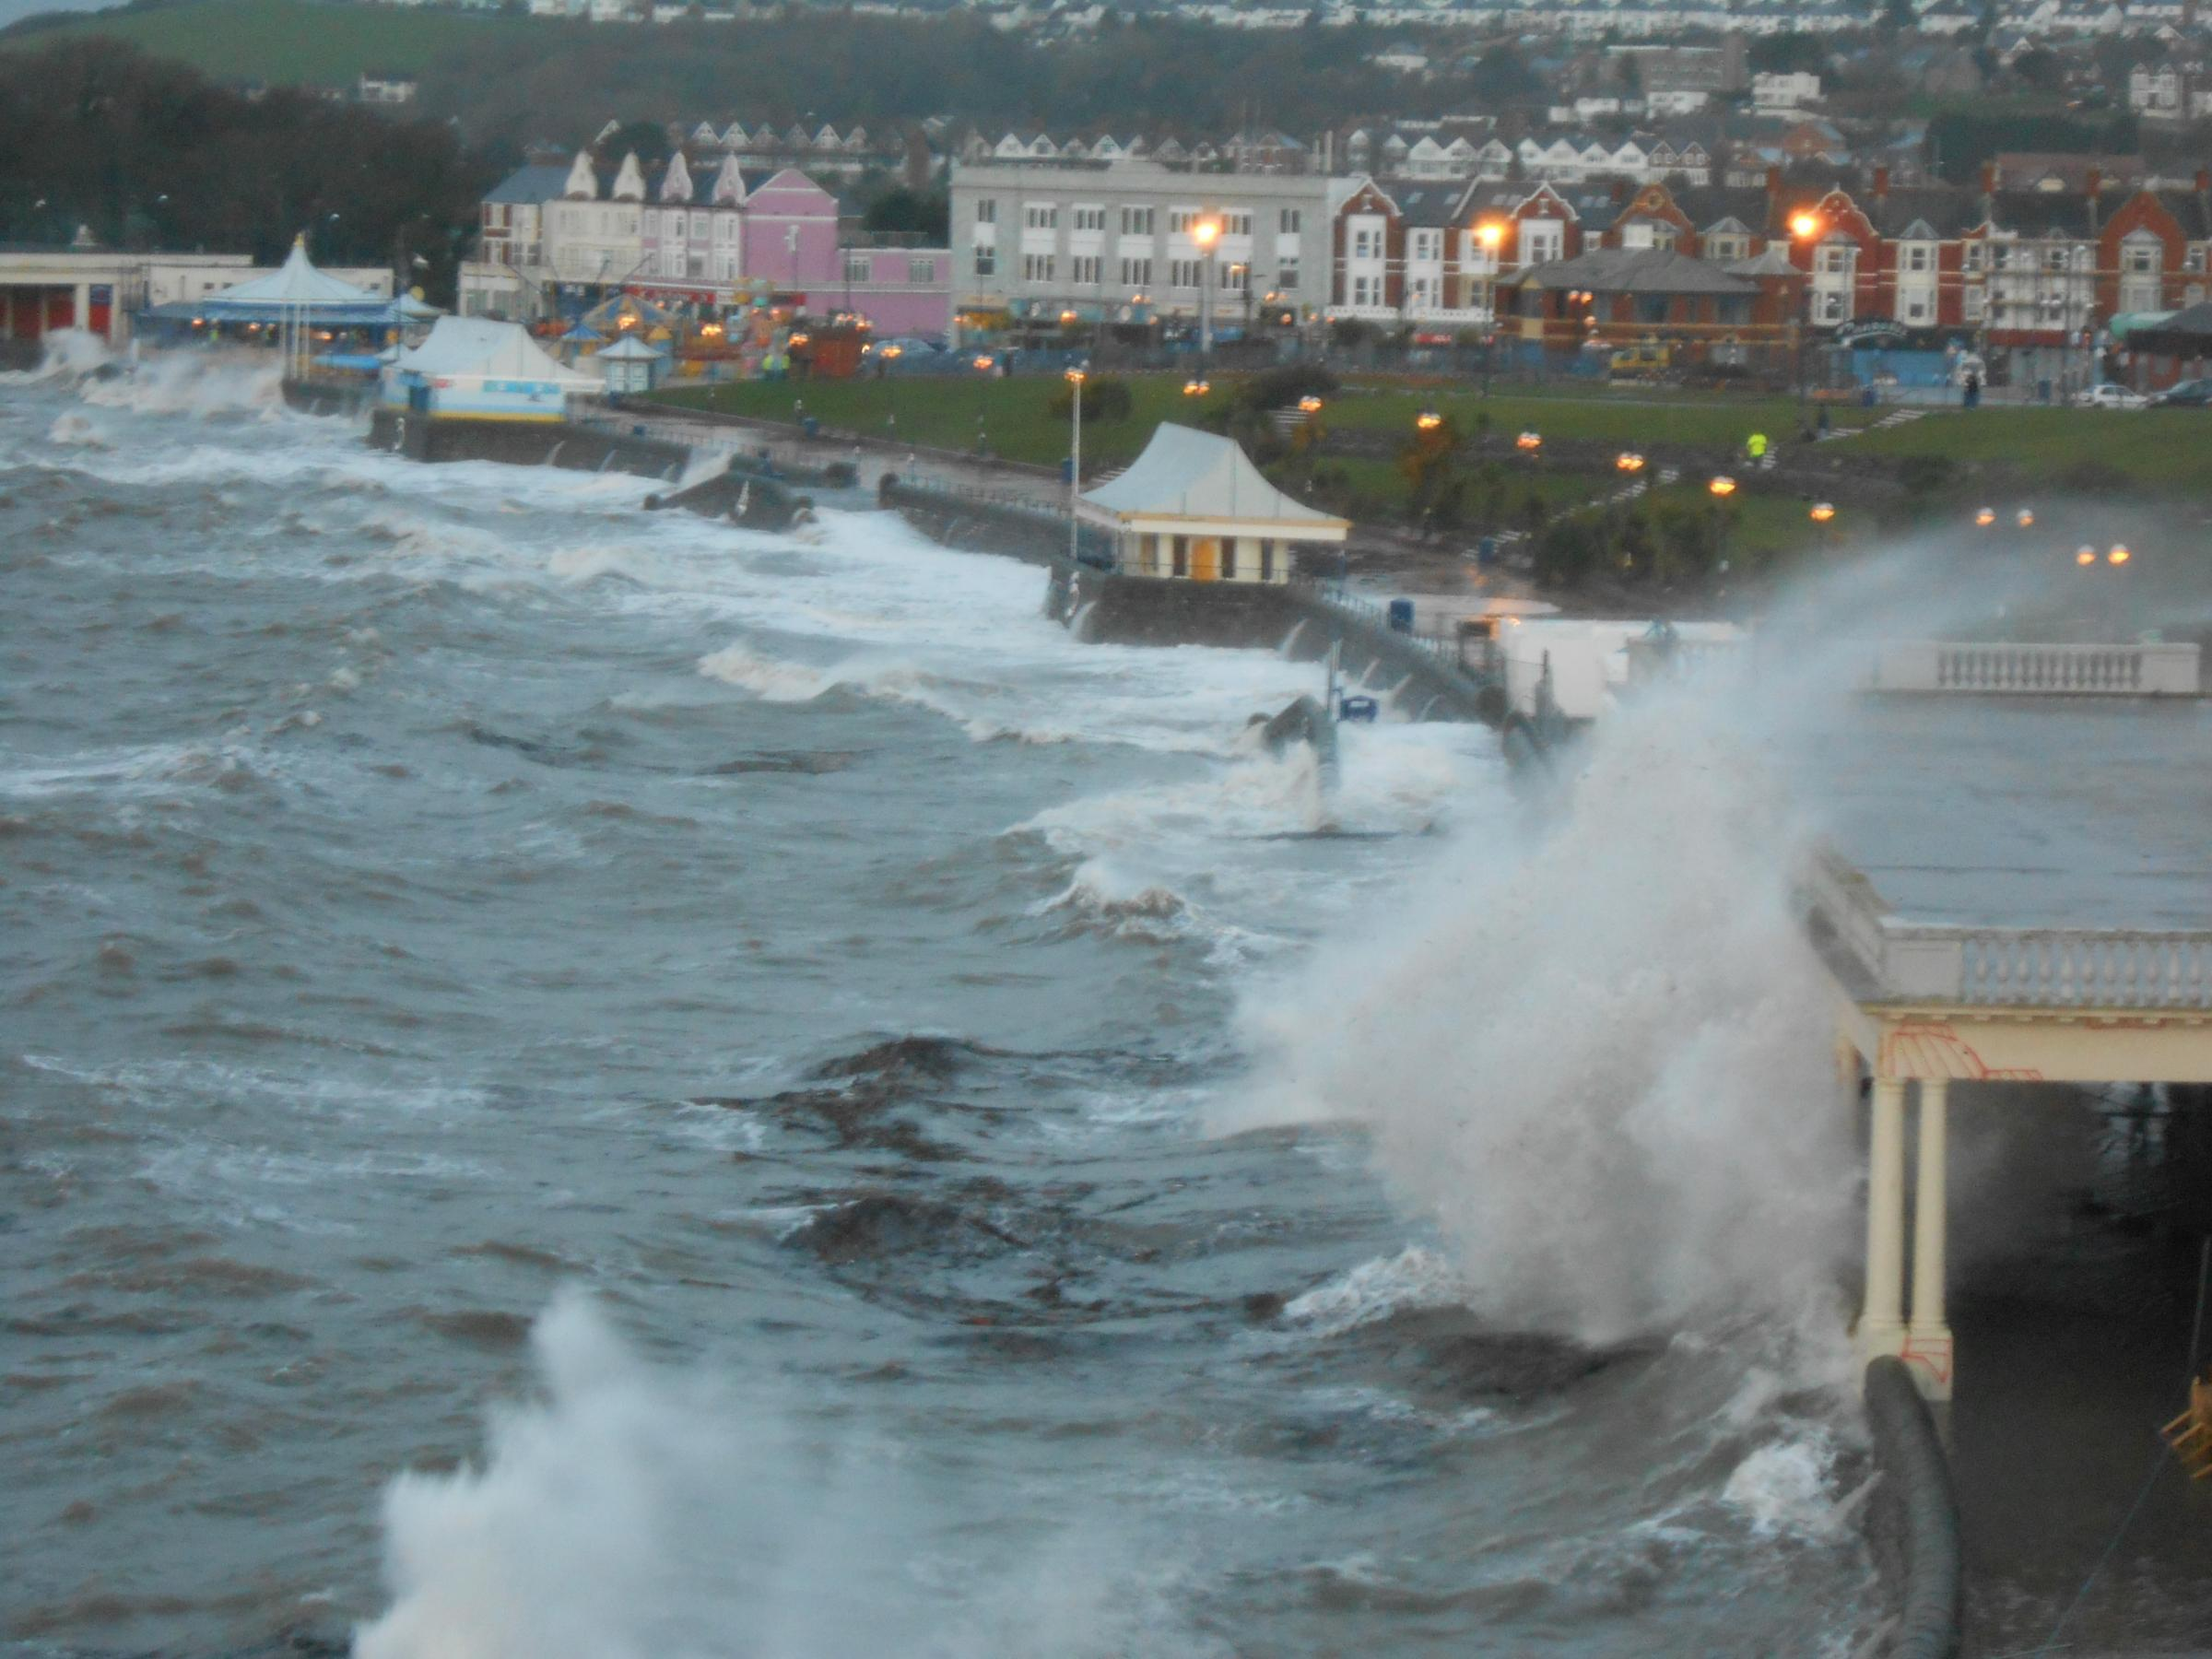 Waves invade land at Barry Island in South Wales